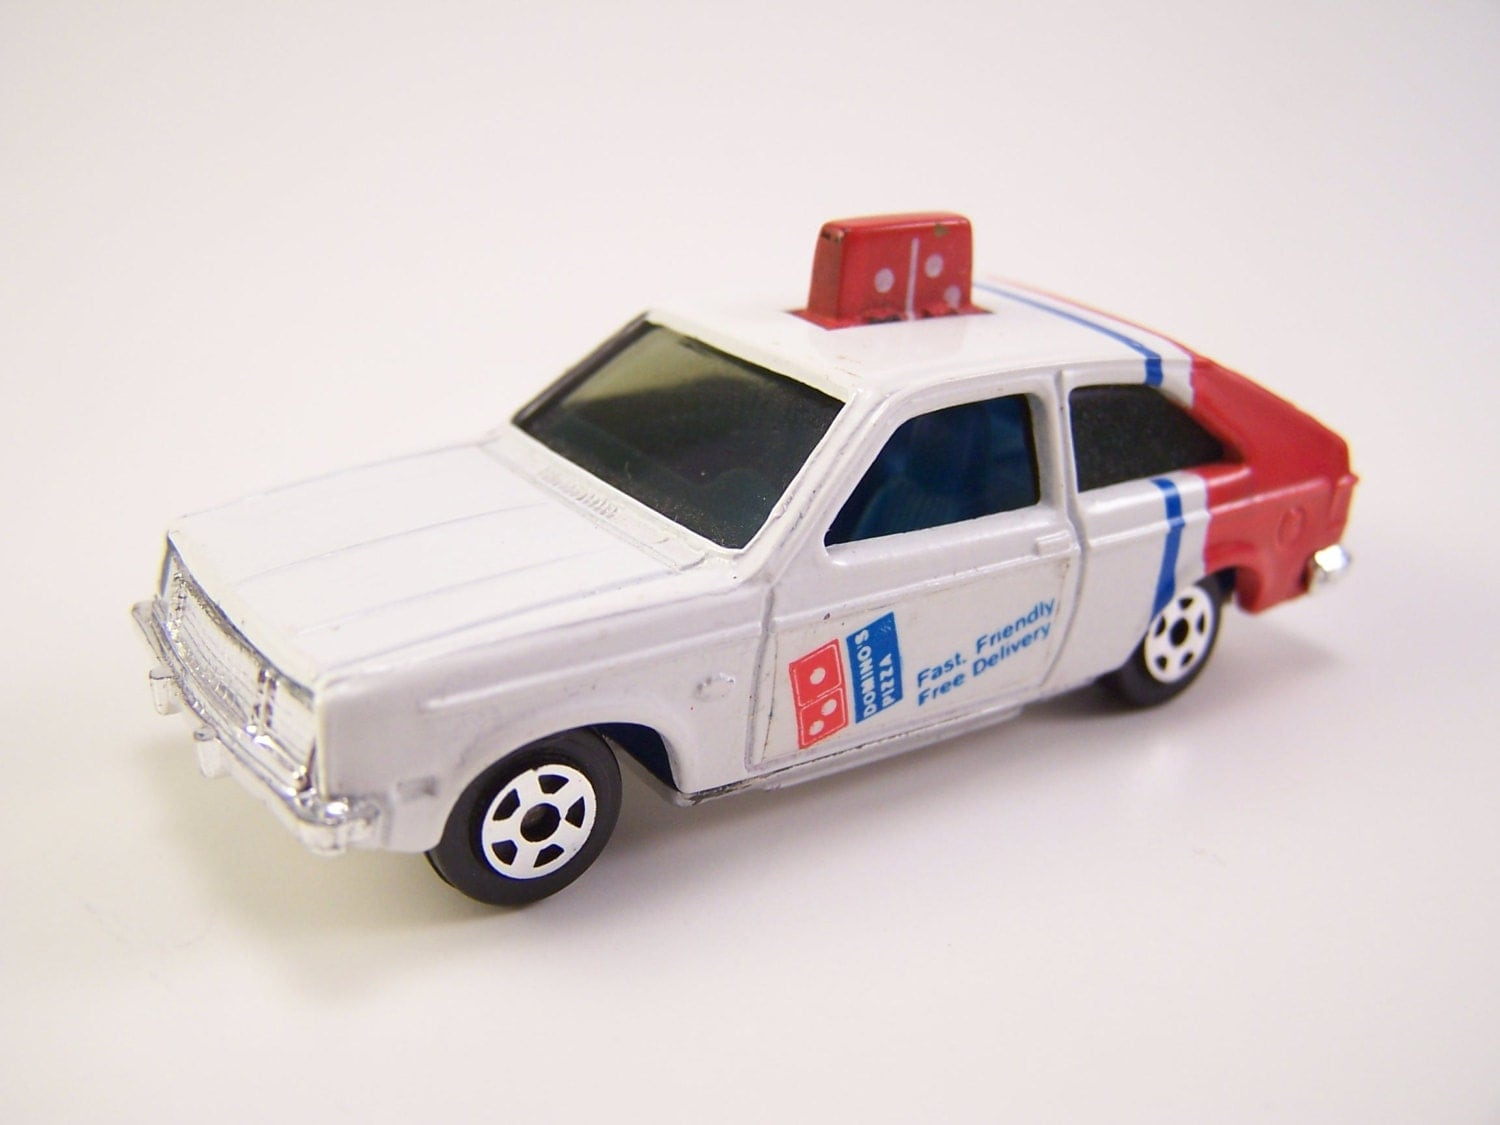 Toy Pizza Delivery Car 10